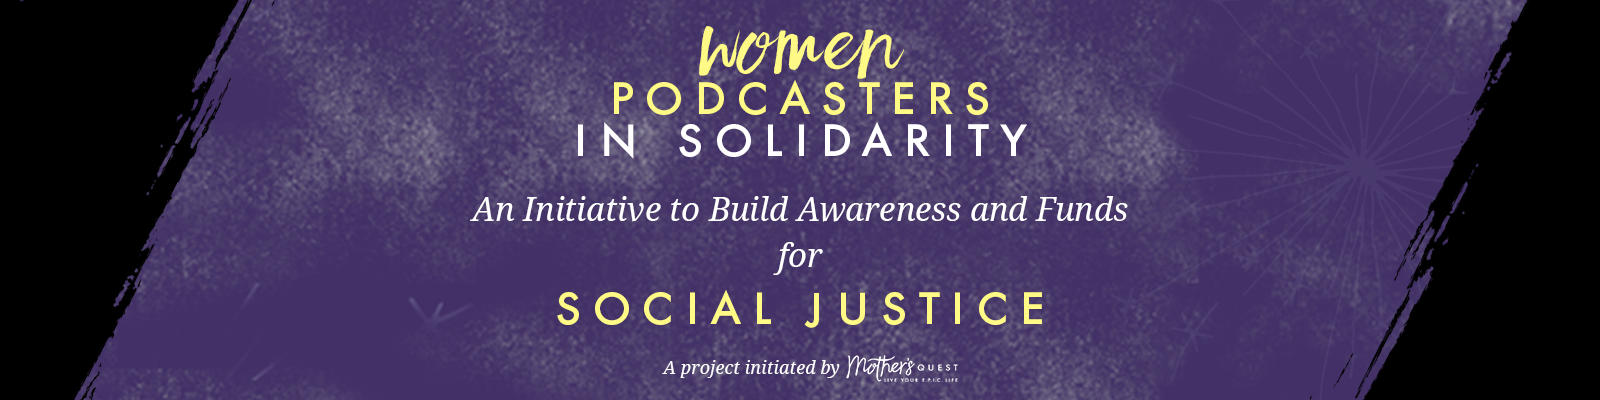 Women Podcasters in Solidarity